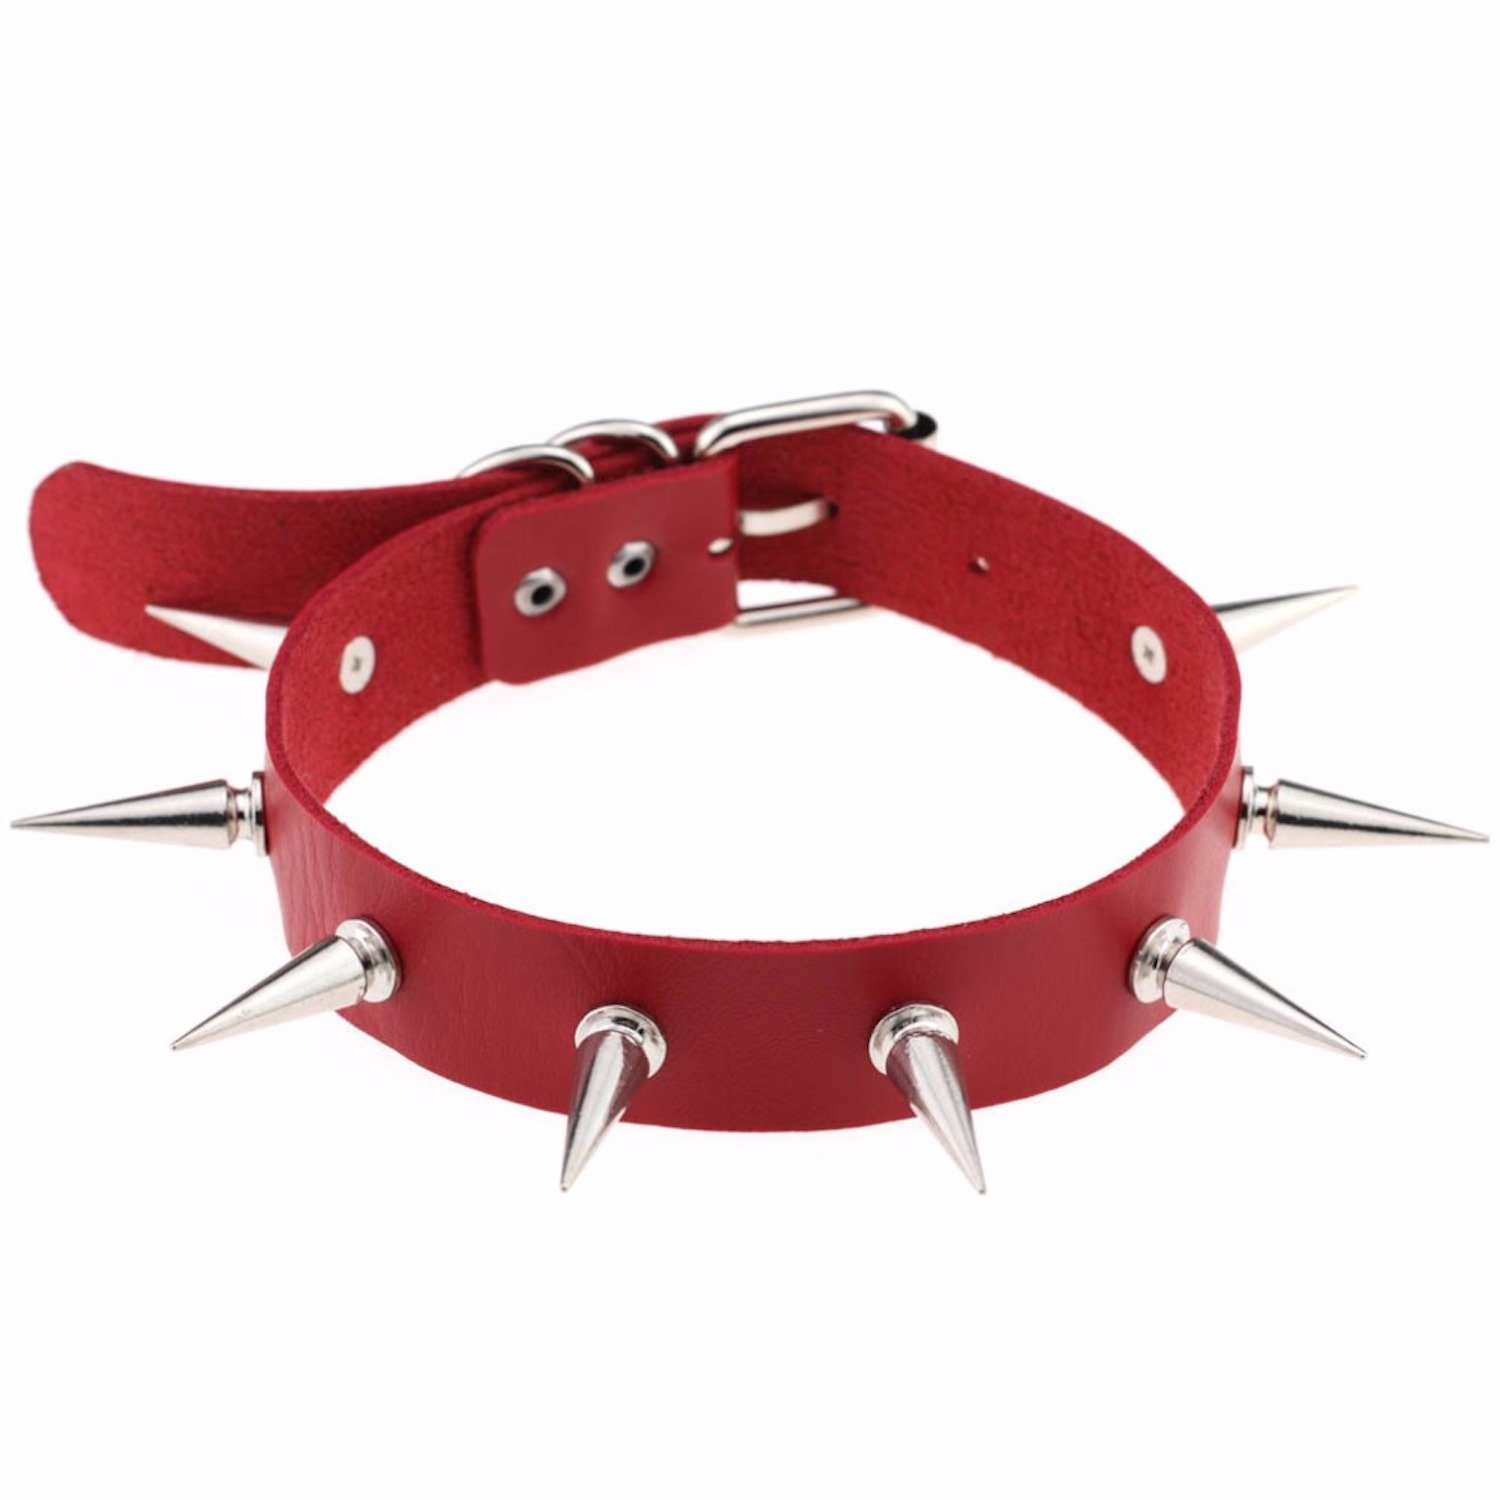 Unisex Simulated Leather PU Punk Rock Gothic Spikes Rivets Choker Collar Necklace Happy Memories